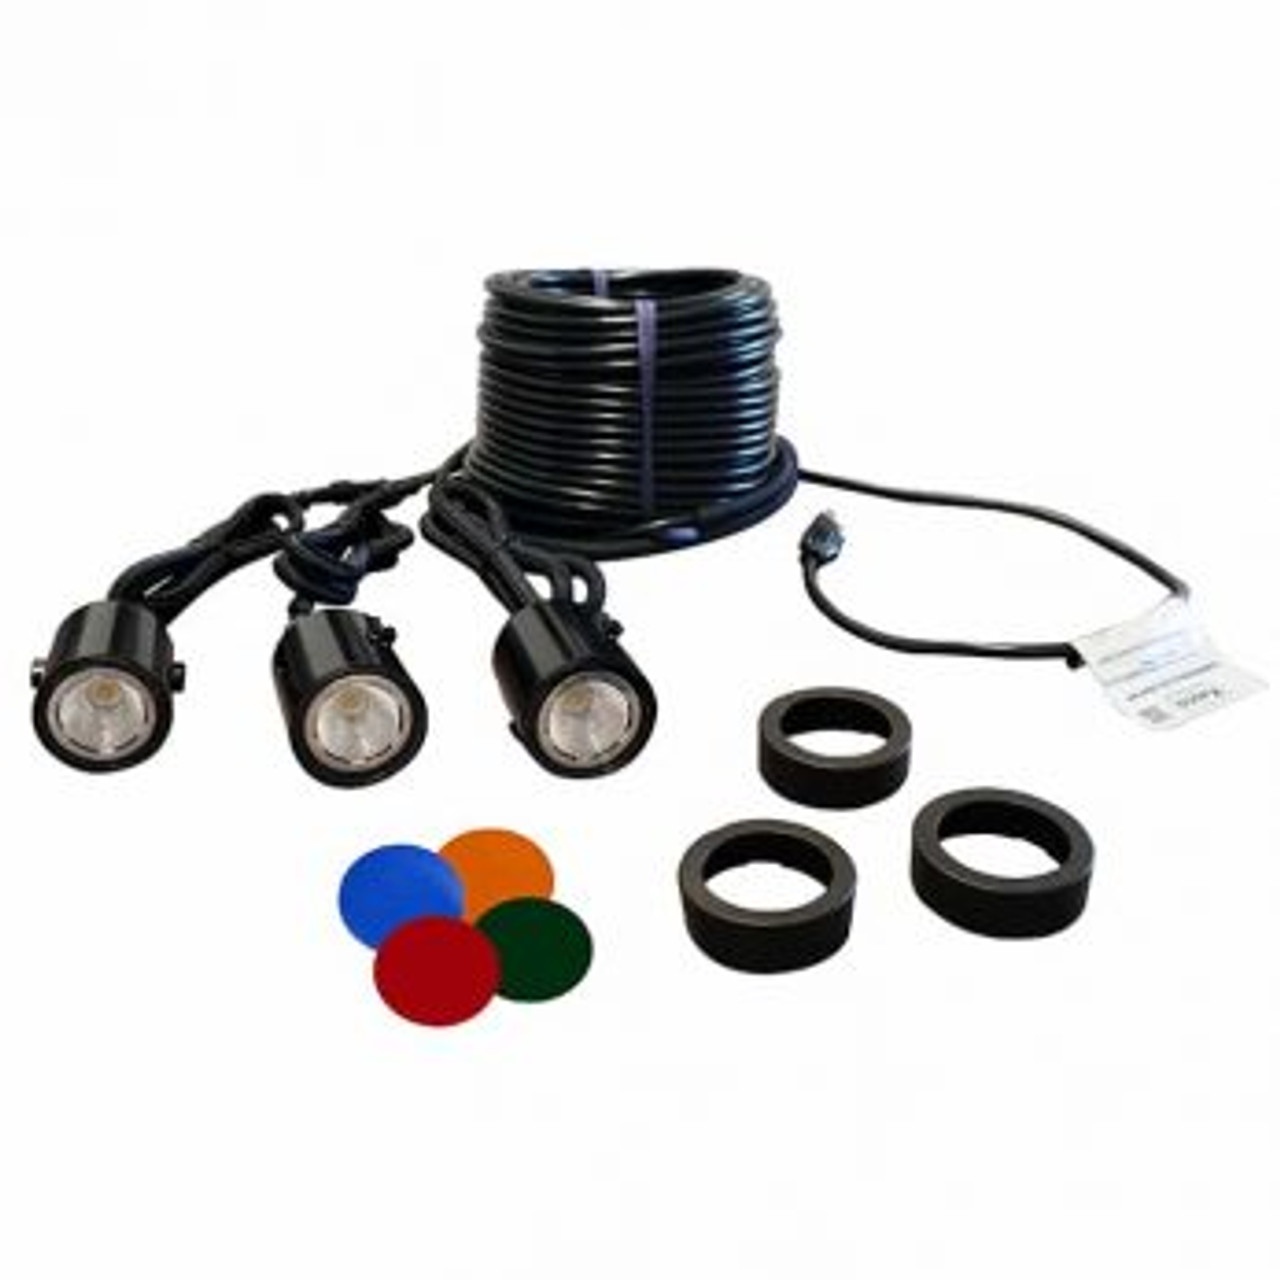 Kasco Marine LED Composite Housing Light kit,3 Fixtures